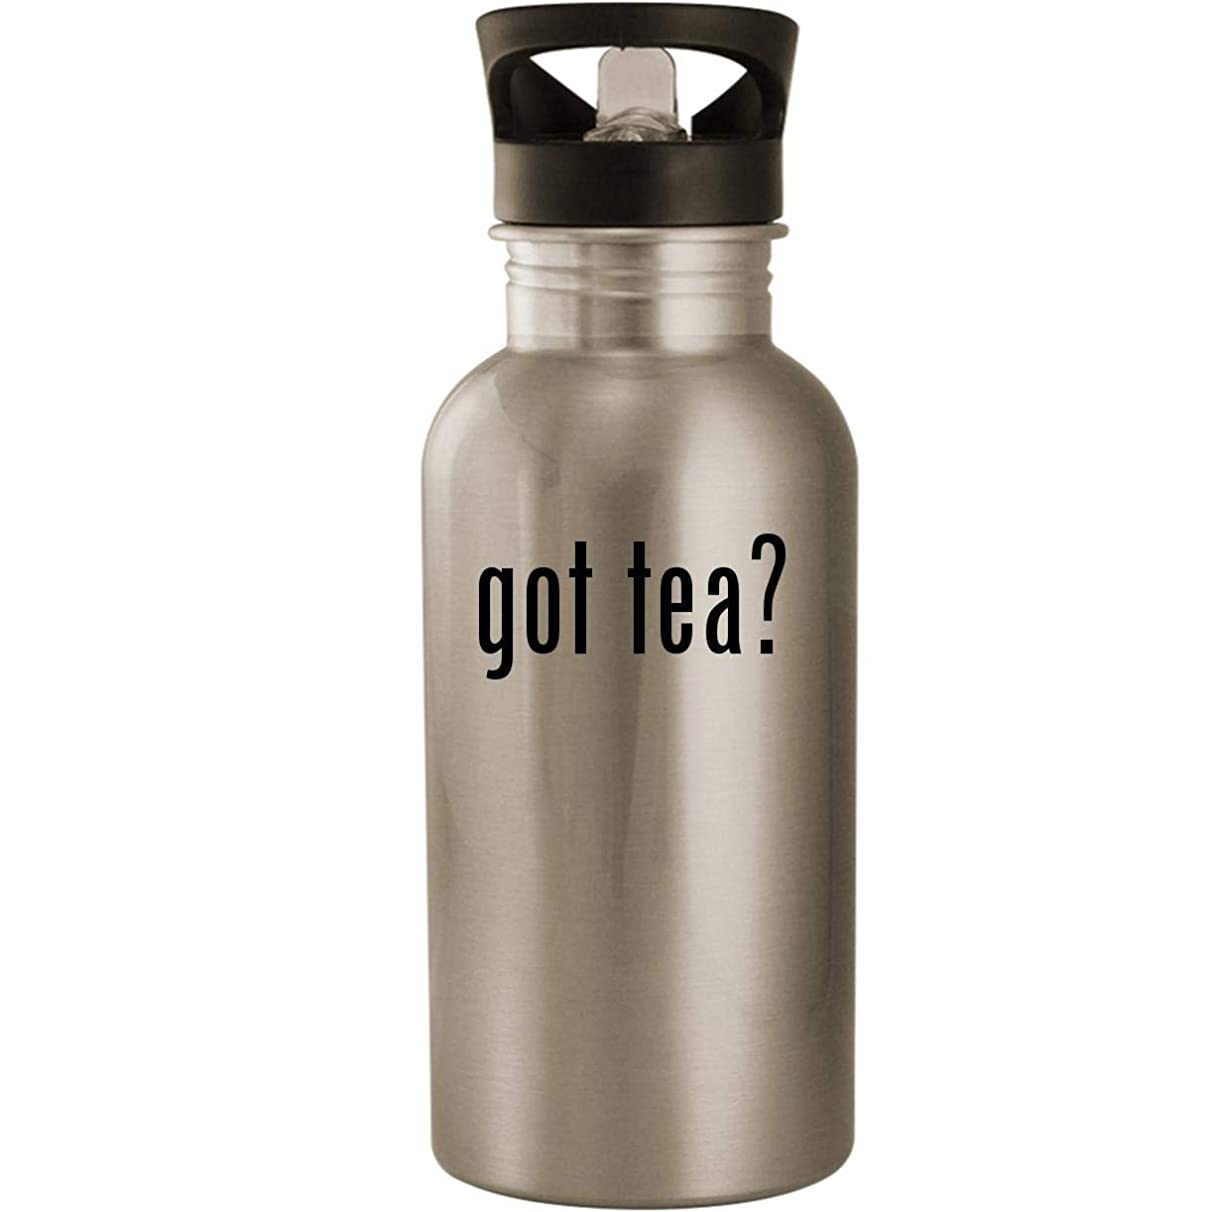 got tea? - Stainless Steel 20oz Road Ready Water Bottle, Silver